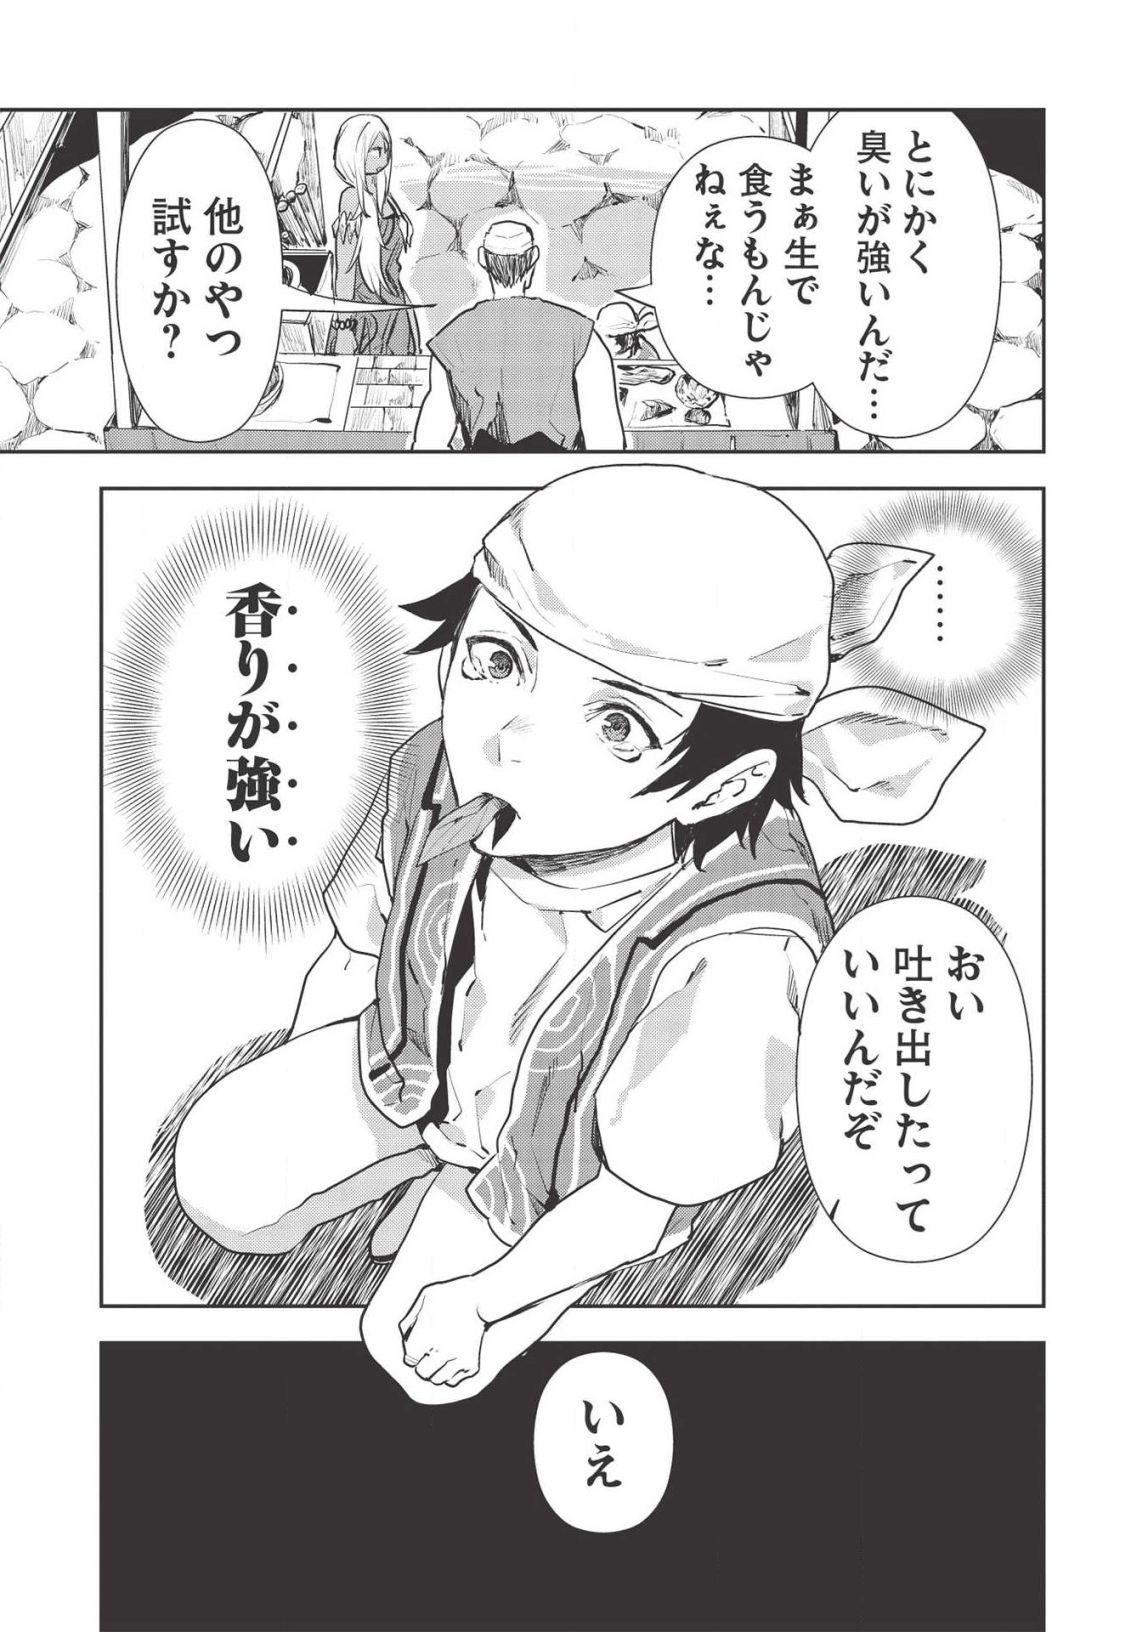 Manga Raw Isekai Ryouridou Chapter 24